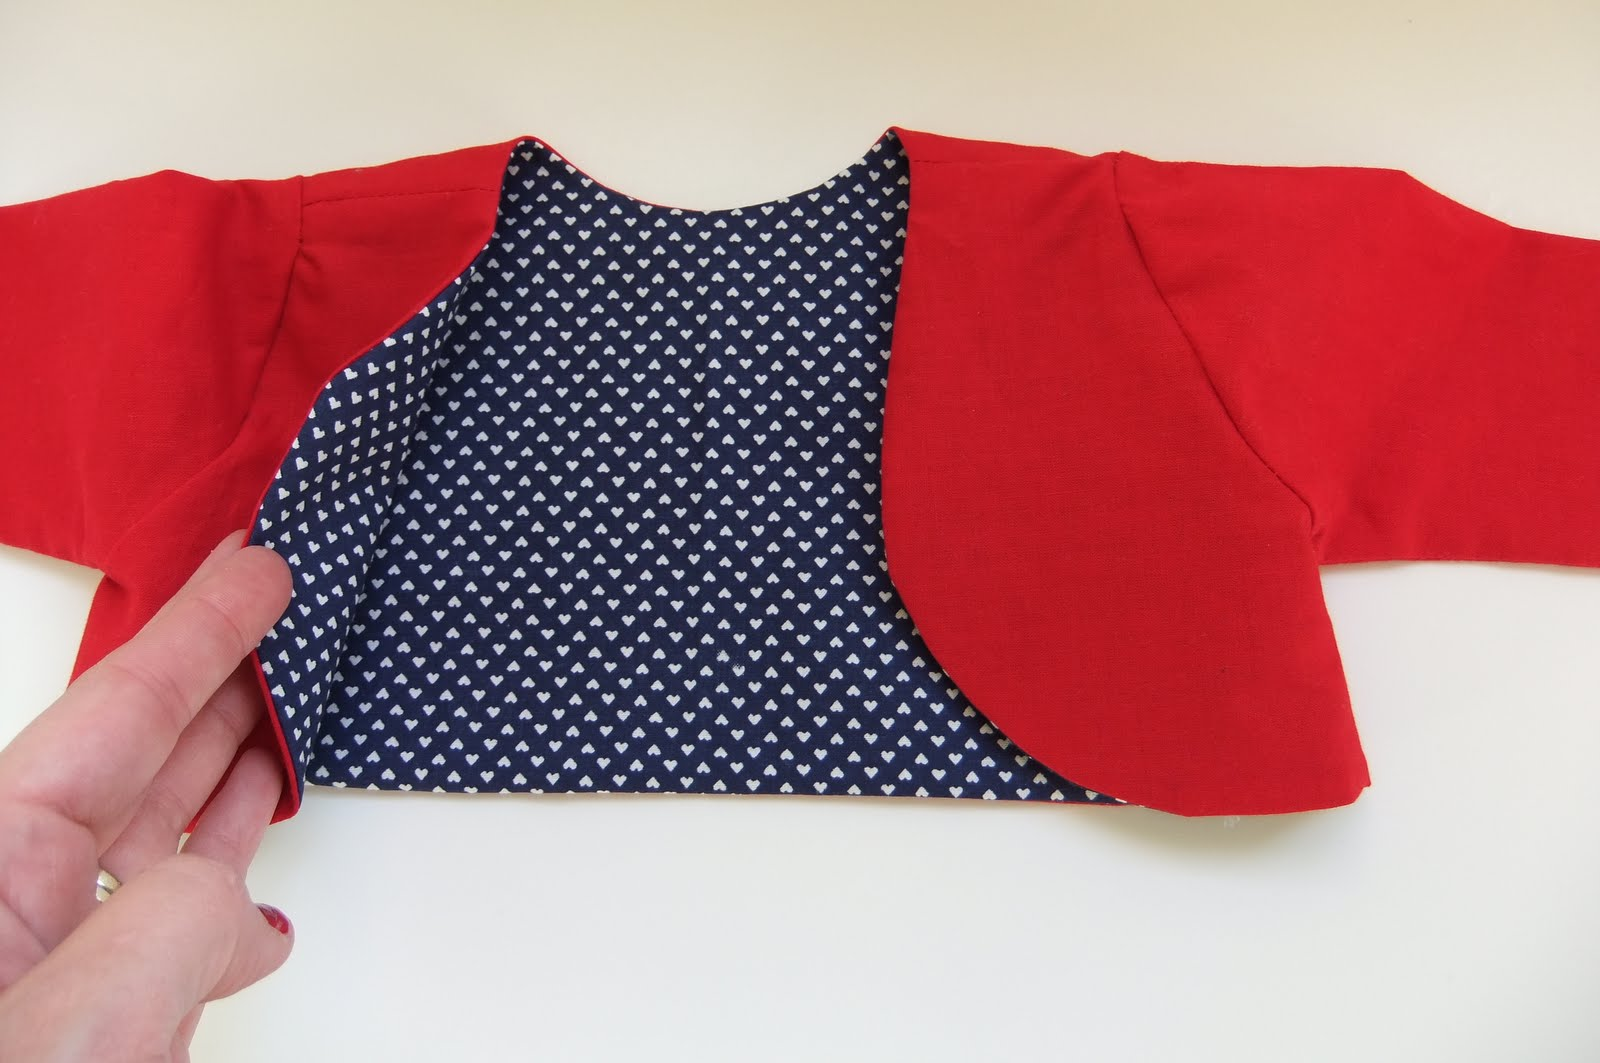 Owly Baby: FREE PATTERN: Snug Shrug Pattern and Tutorial